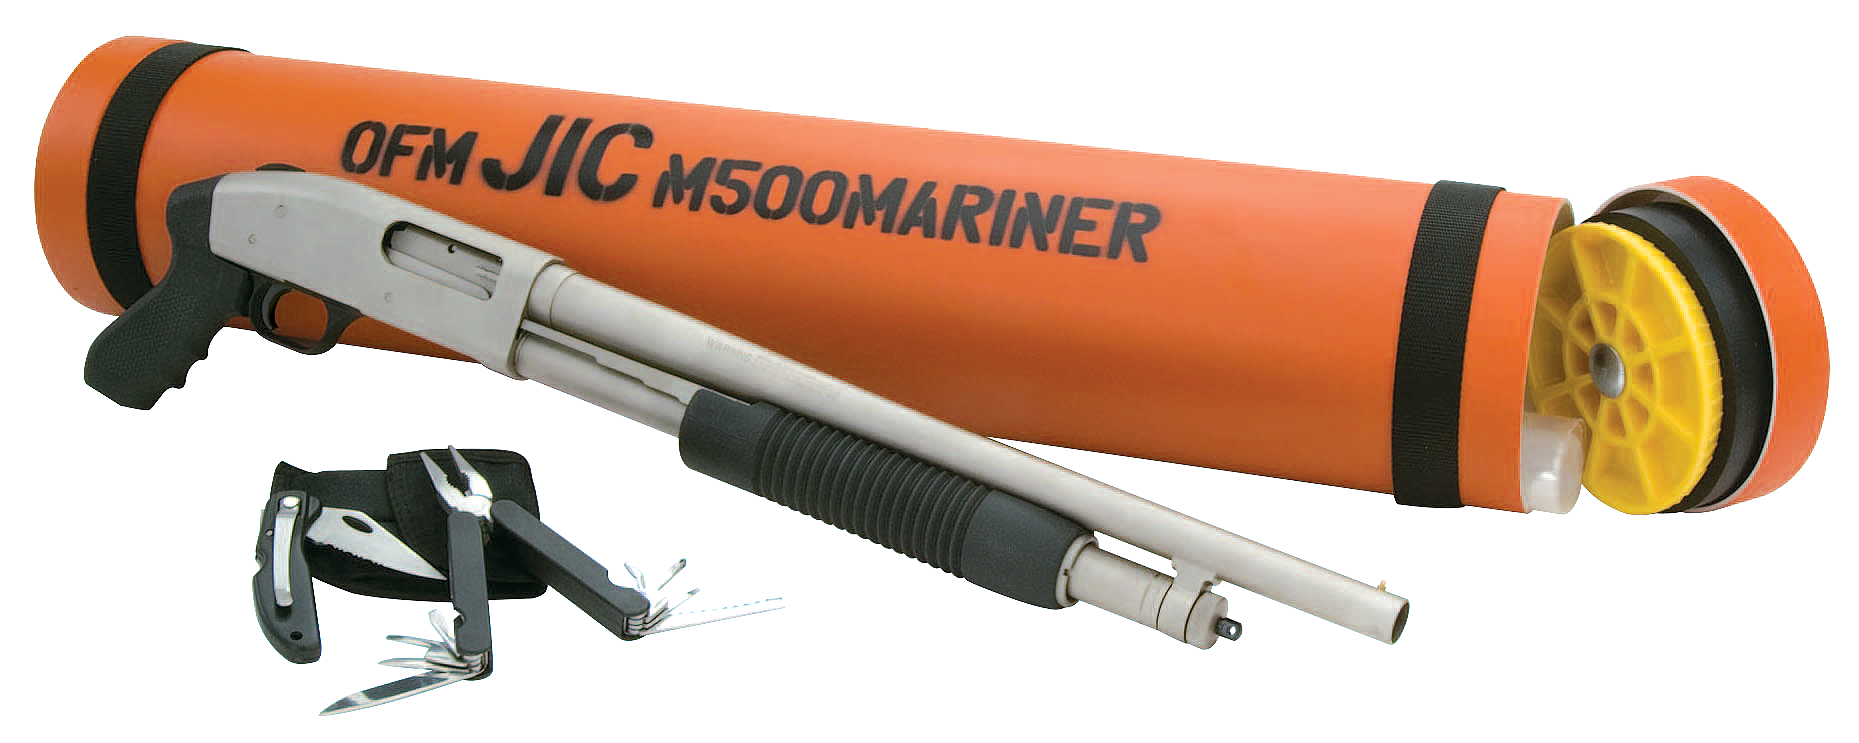 a mossberg 500 mariner shotgun with a water resistant tube